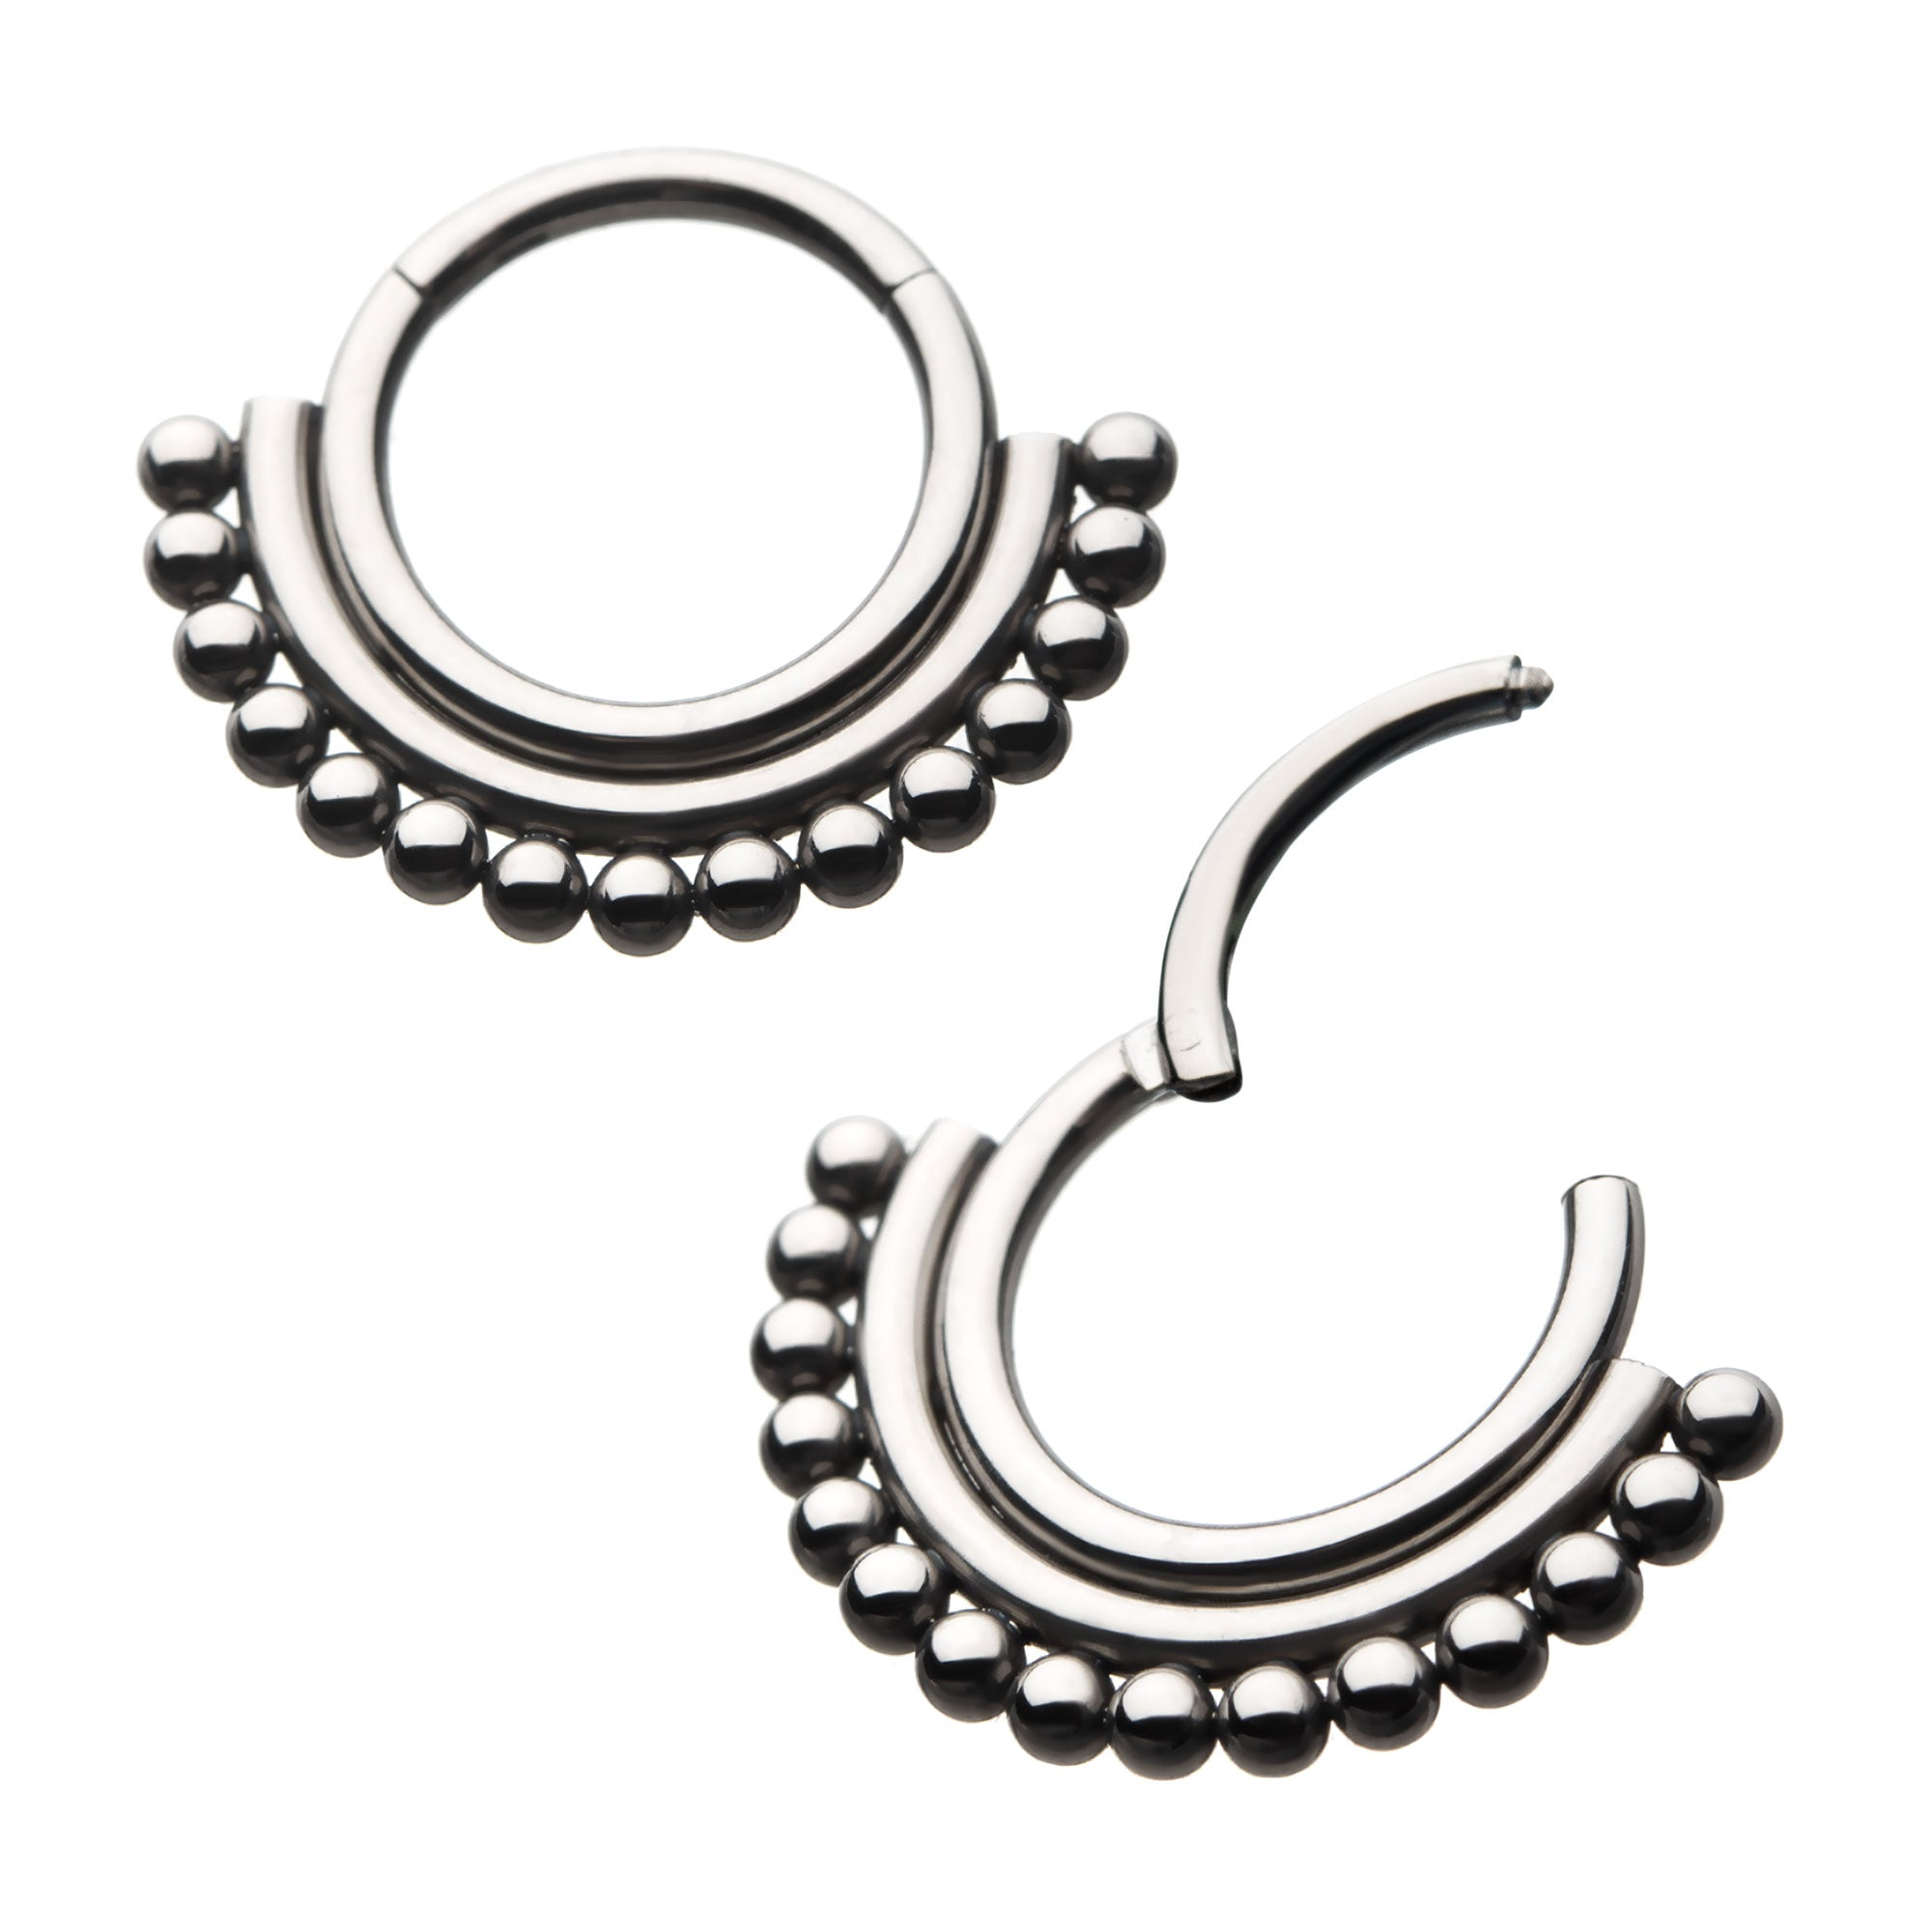 Titanium 15 Beaded Hinged Segment Ring (1.2mm x 8mm)-Labrets & Piercing-Black Betty Design